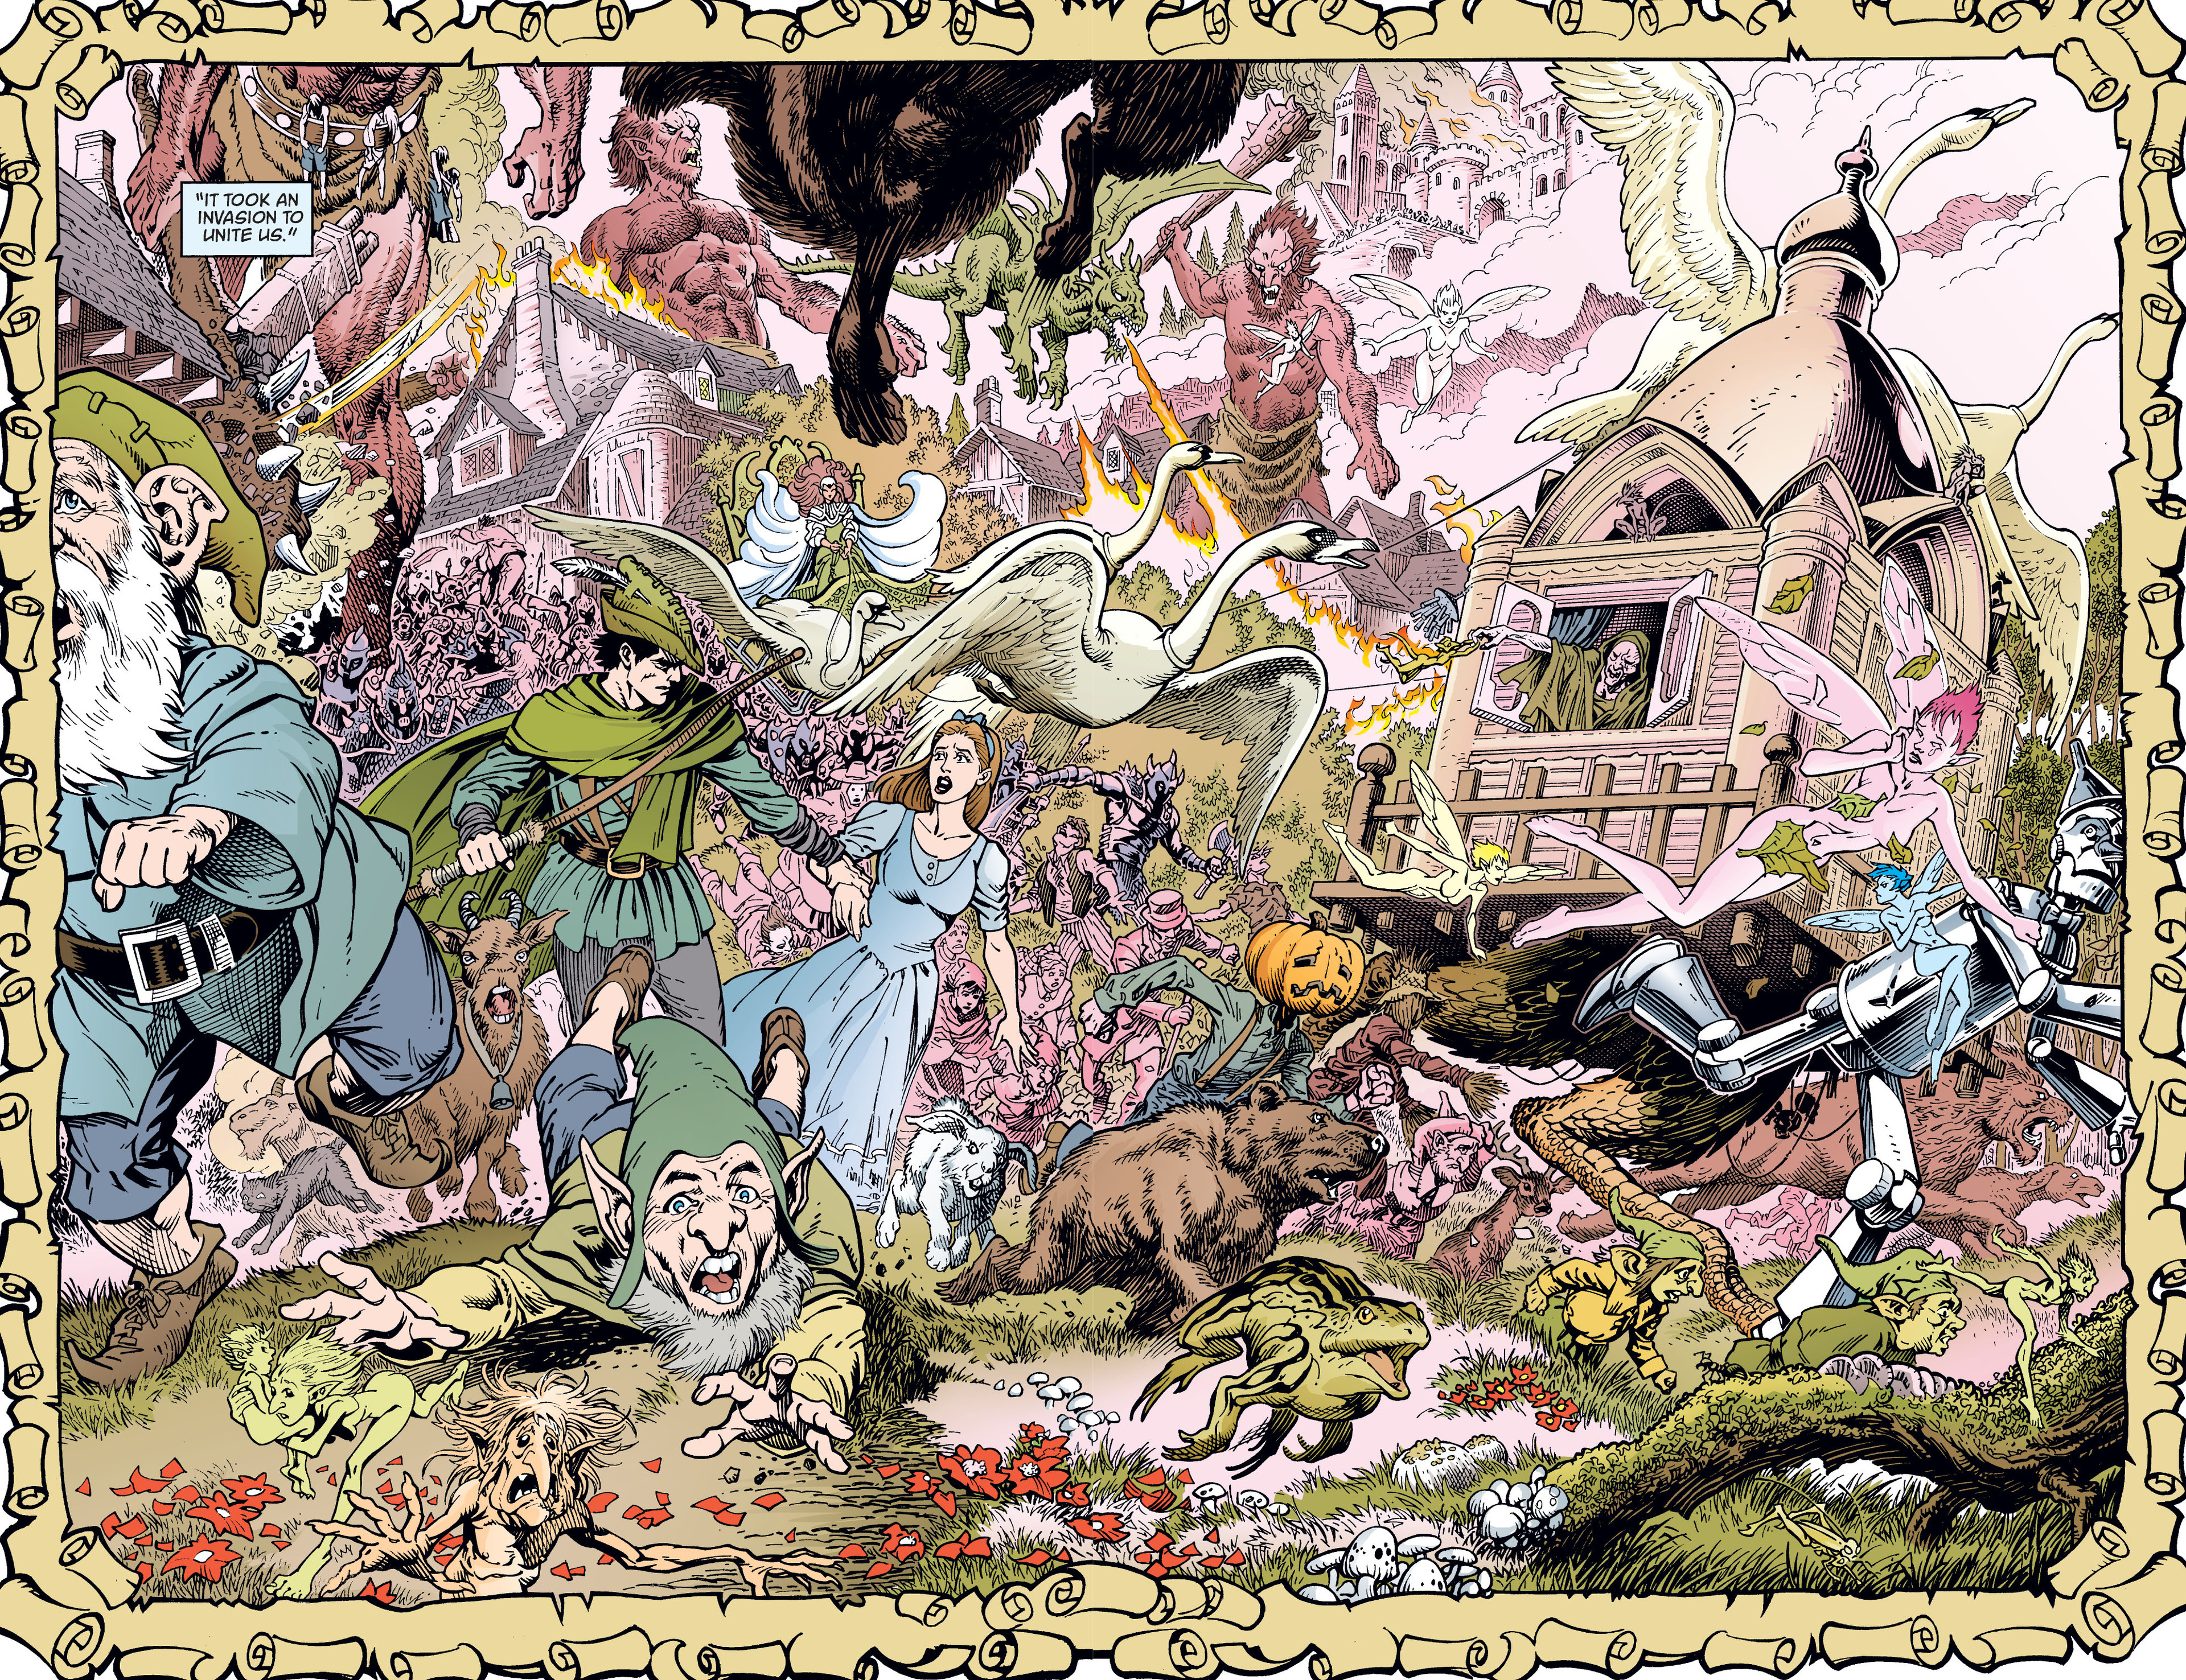 File:The Fables.jpg